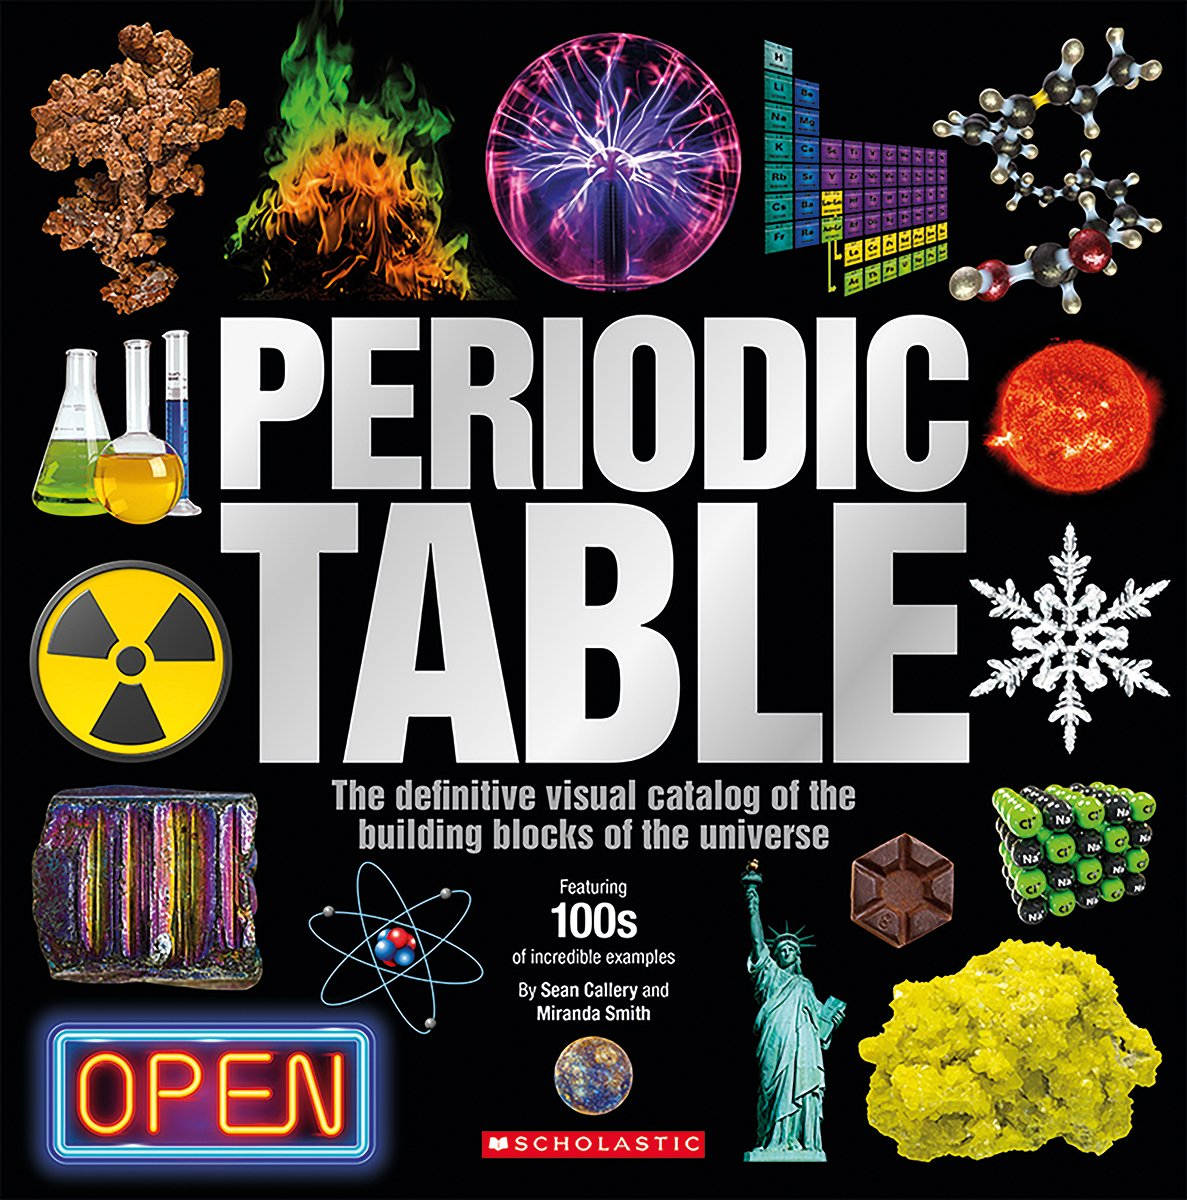 The periodic table sean callery miranda smith 9781338185034 the periodic table sean callery miranda smith 9781338185034 amazon books urtaz Image collections